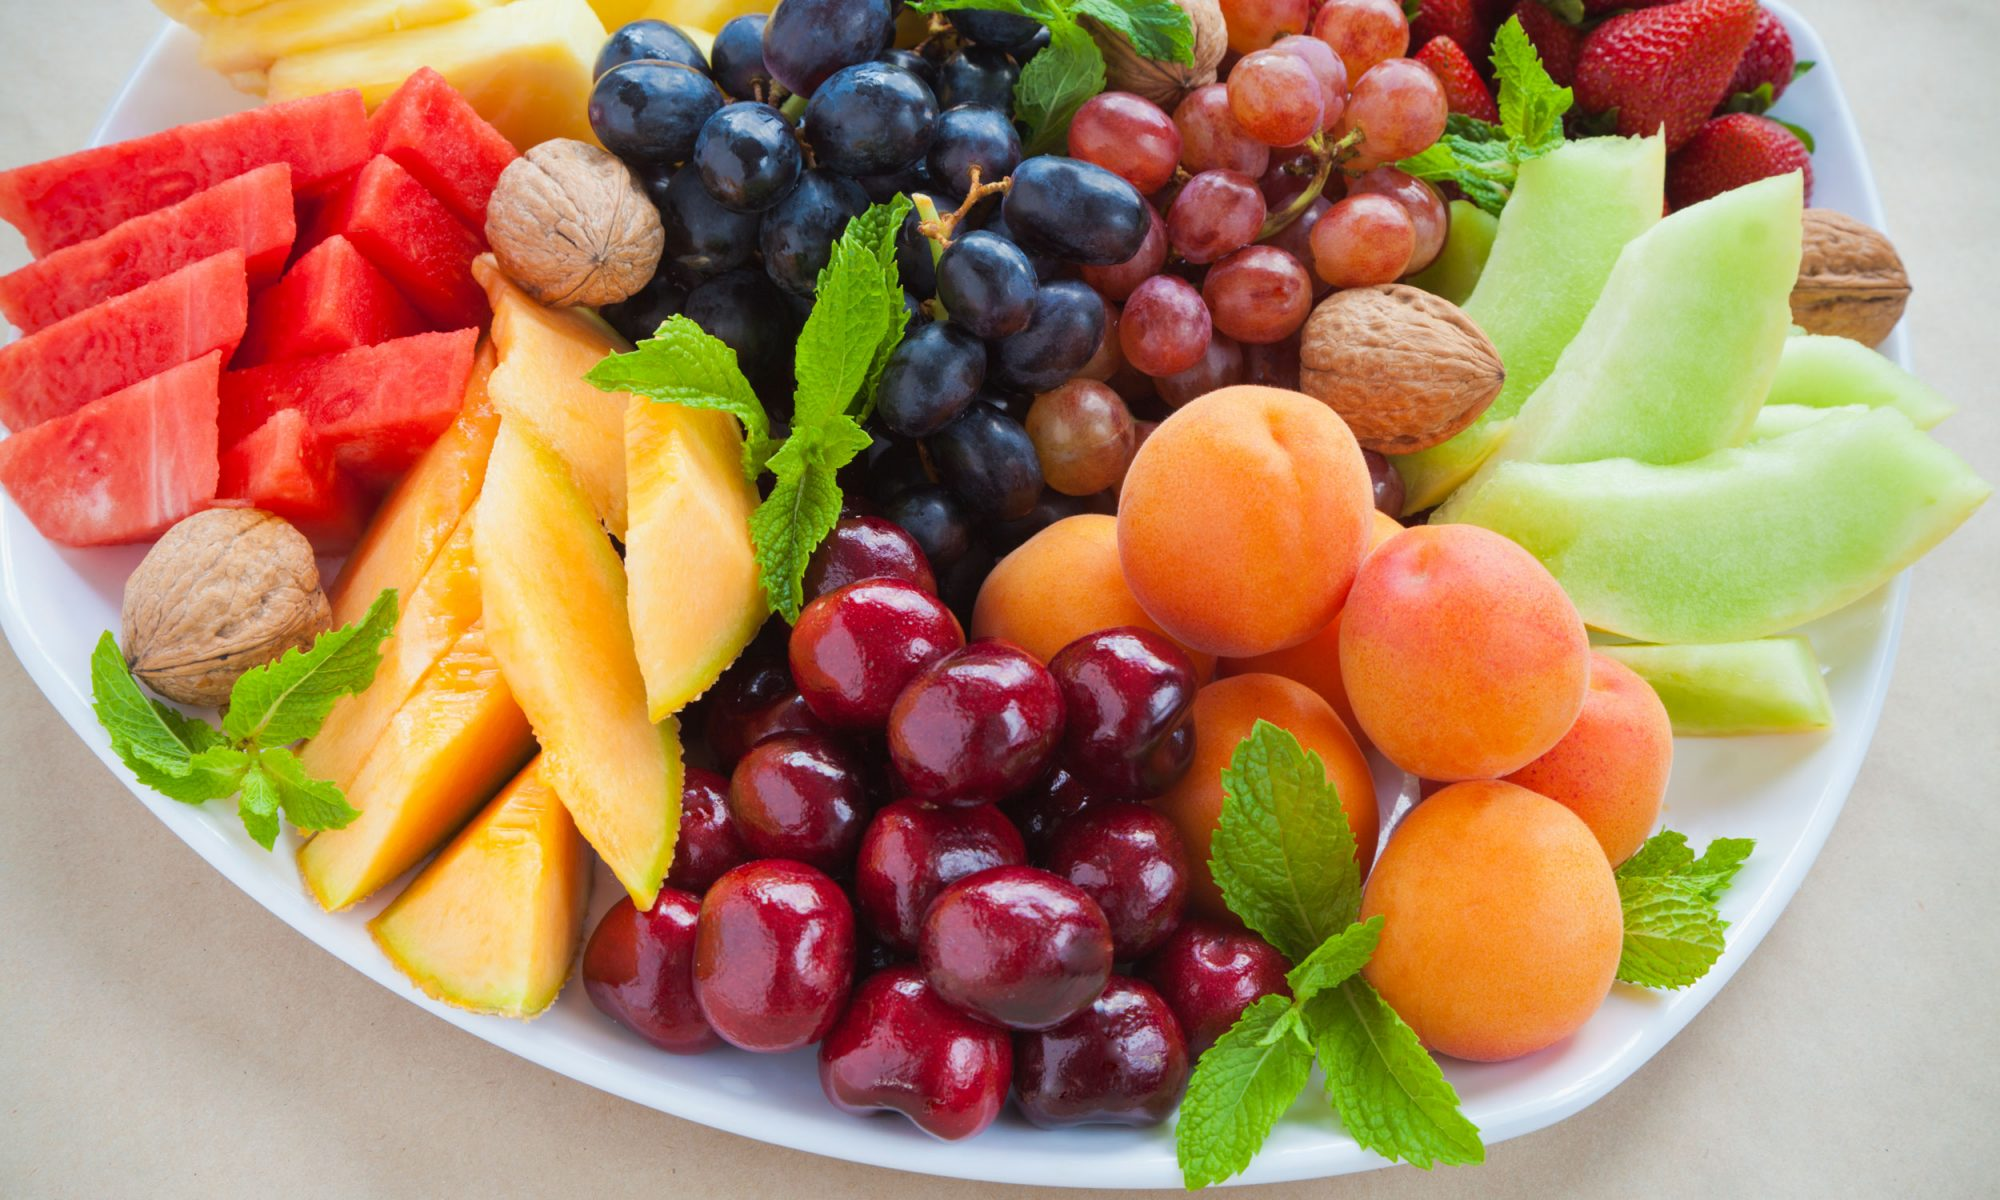 EC: You Should Eat a Whole Fruit Platter By Yourself